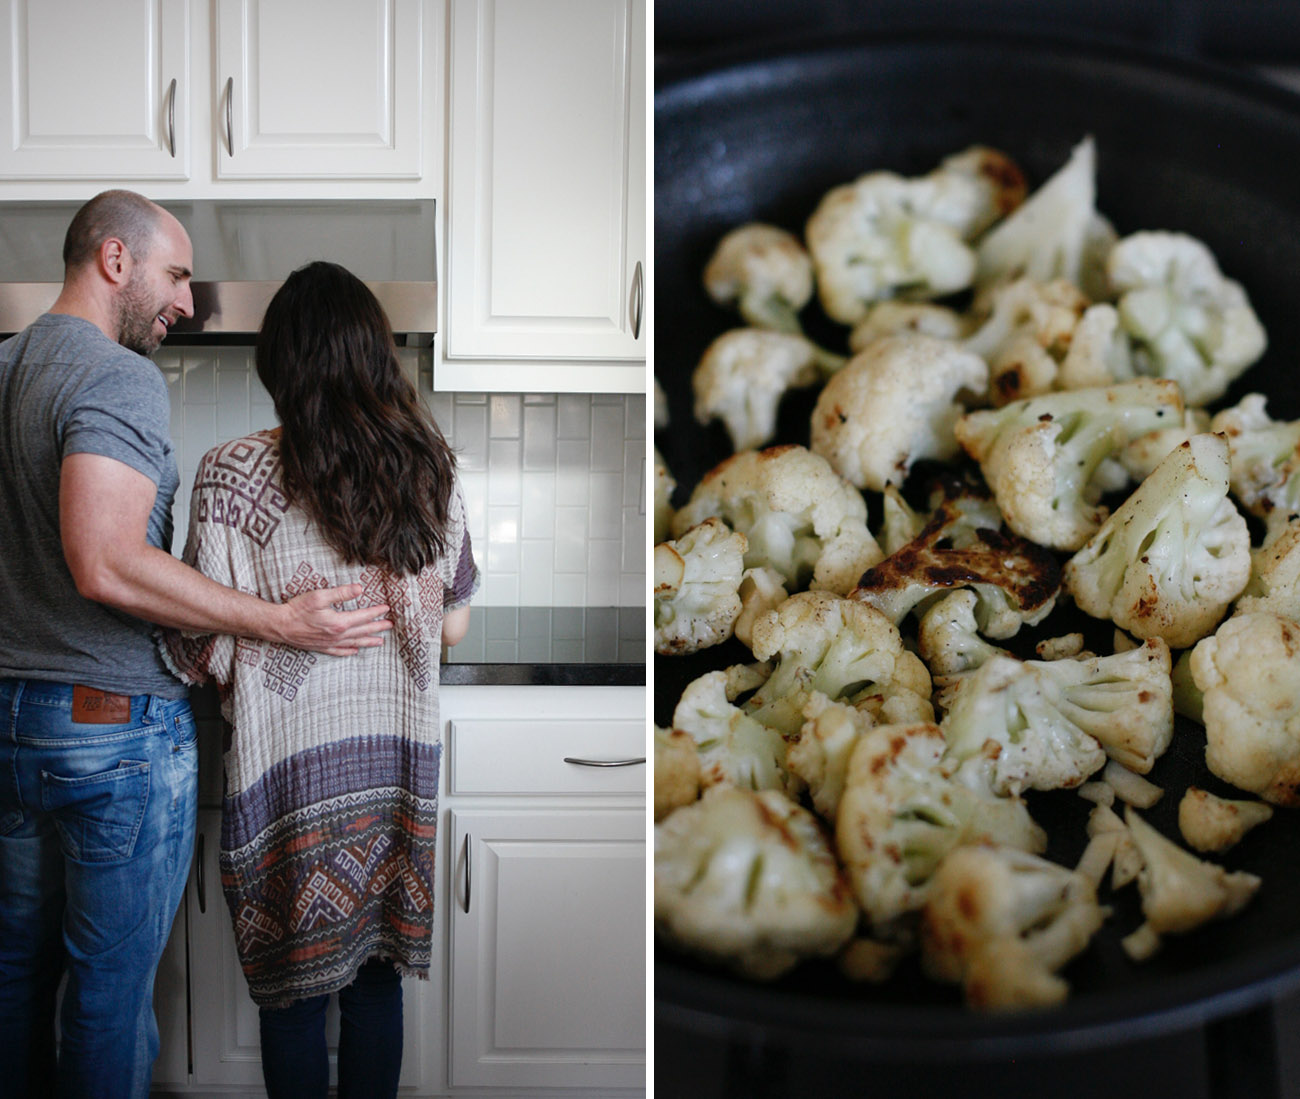 Sun Basket Meals for Date Night